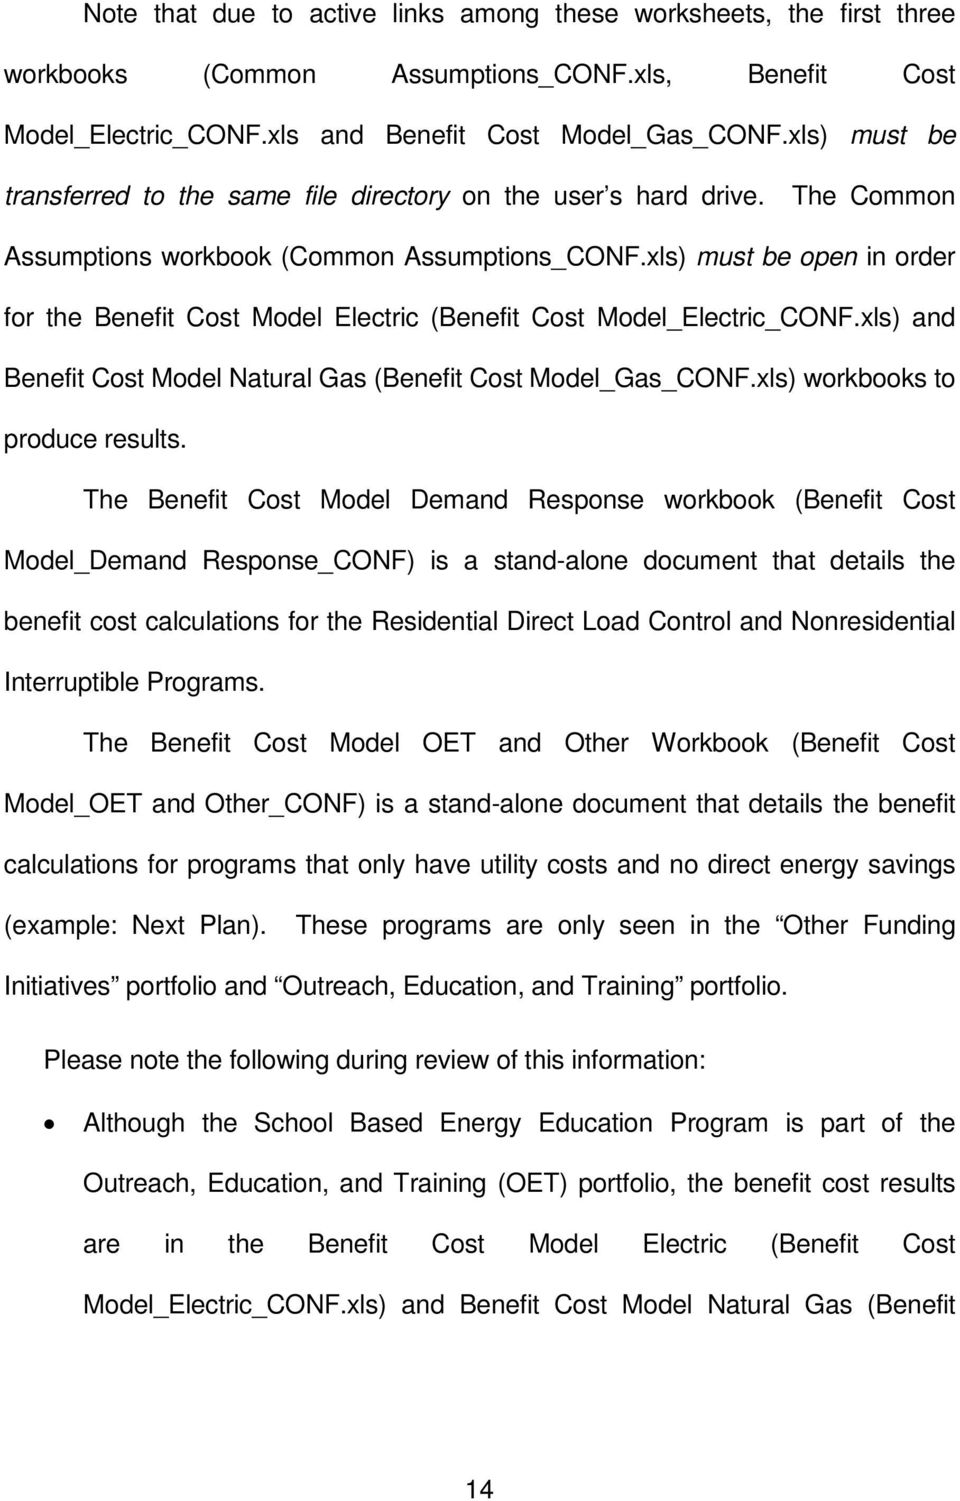 xls) must be open in order for the Benefit Cost Model Electric (Benefit Cost Model_Electric_CONF.xls) and Benefit Cost Model Natural Gas (Benefit Cost Model_Gas_CONF.xls) workbooks to produce results.